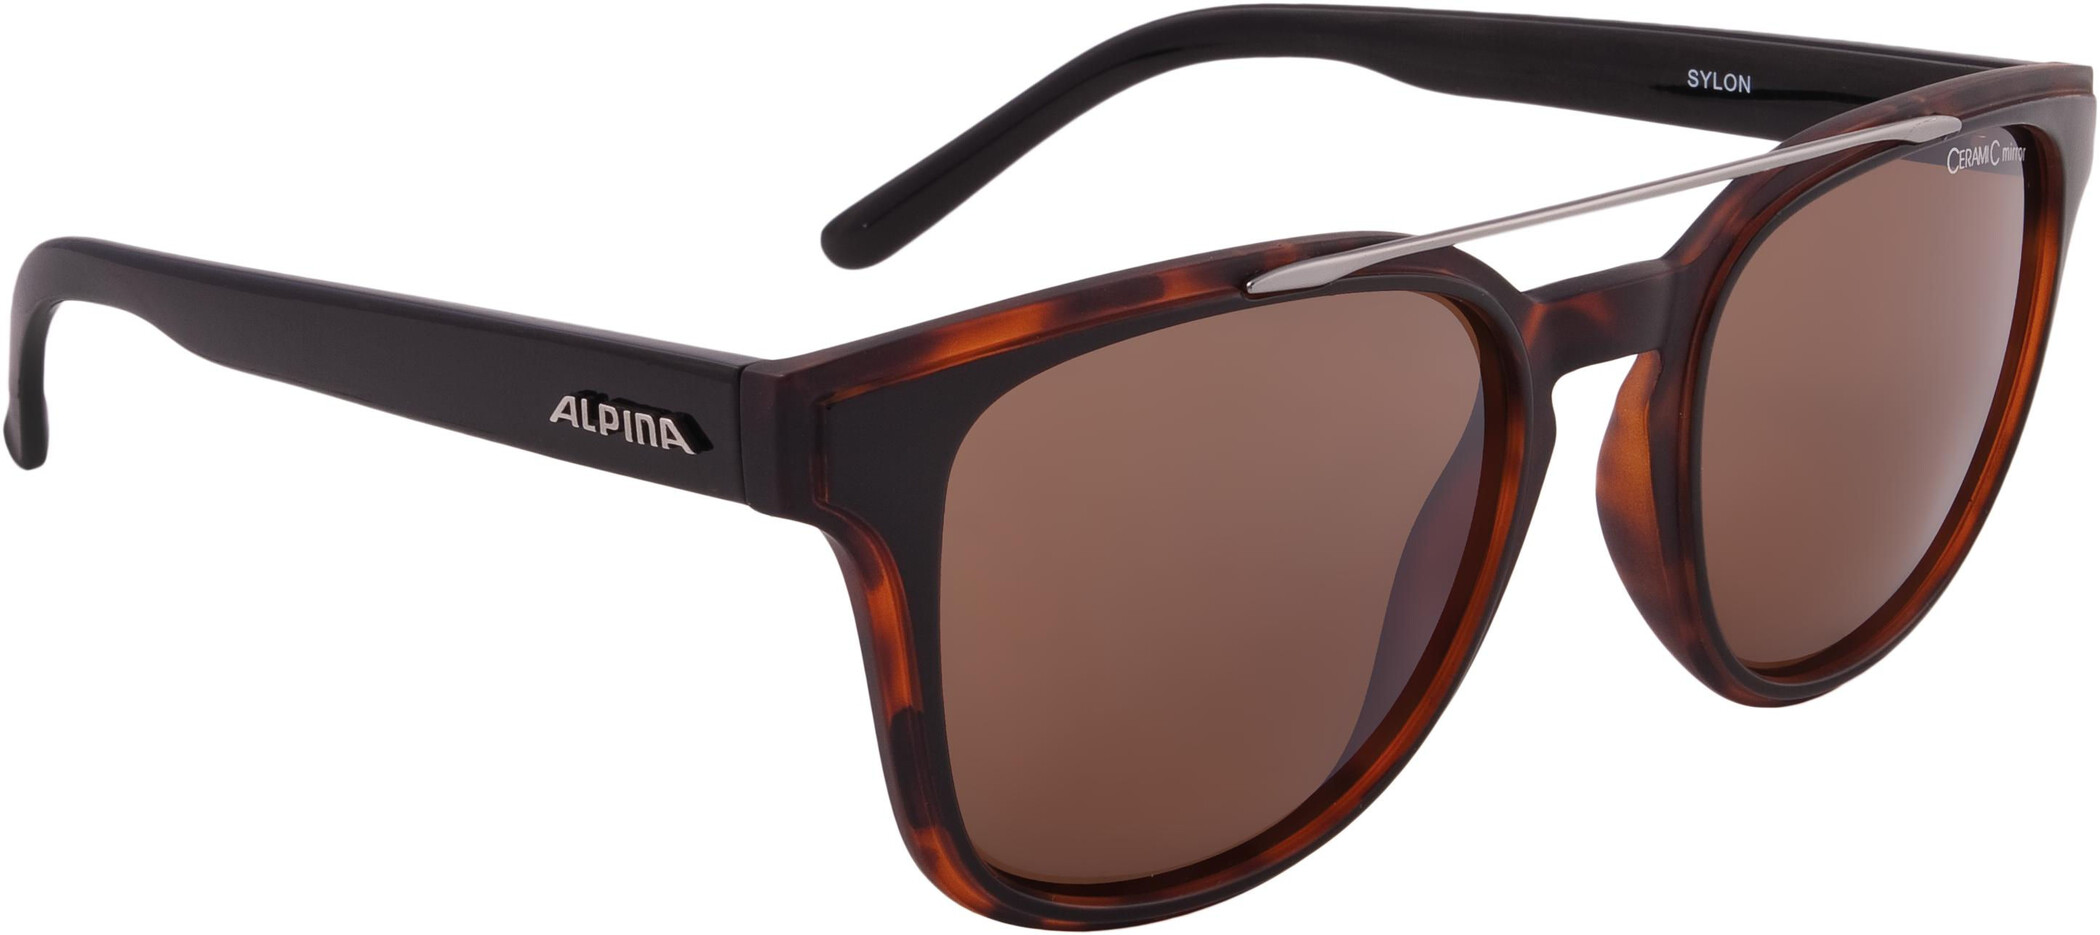 Alpina Sylon Cykelbriller, black-havana matt (2019) | Glasses